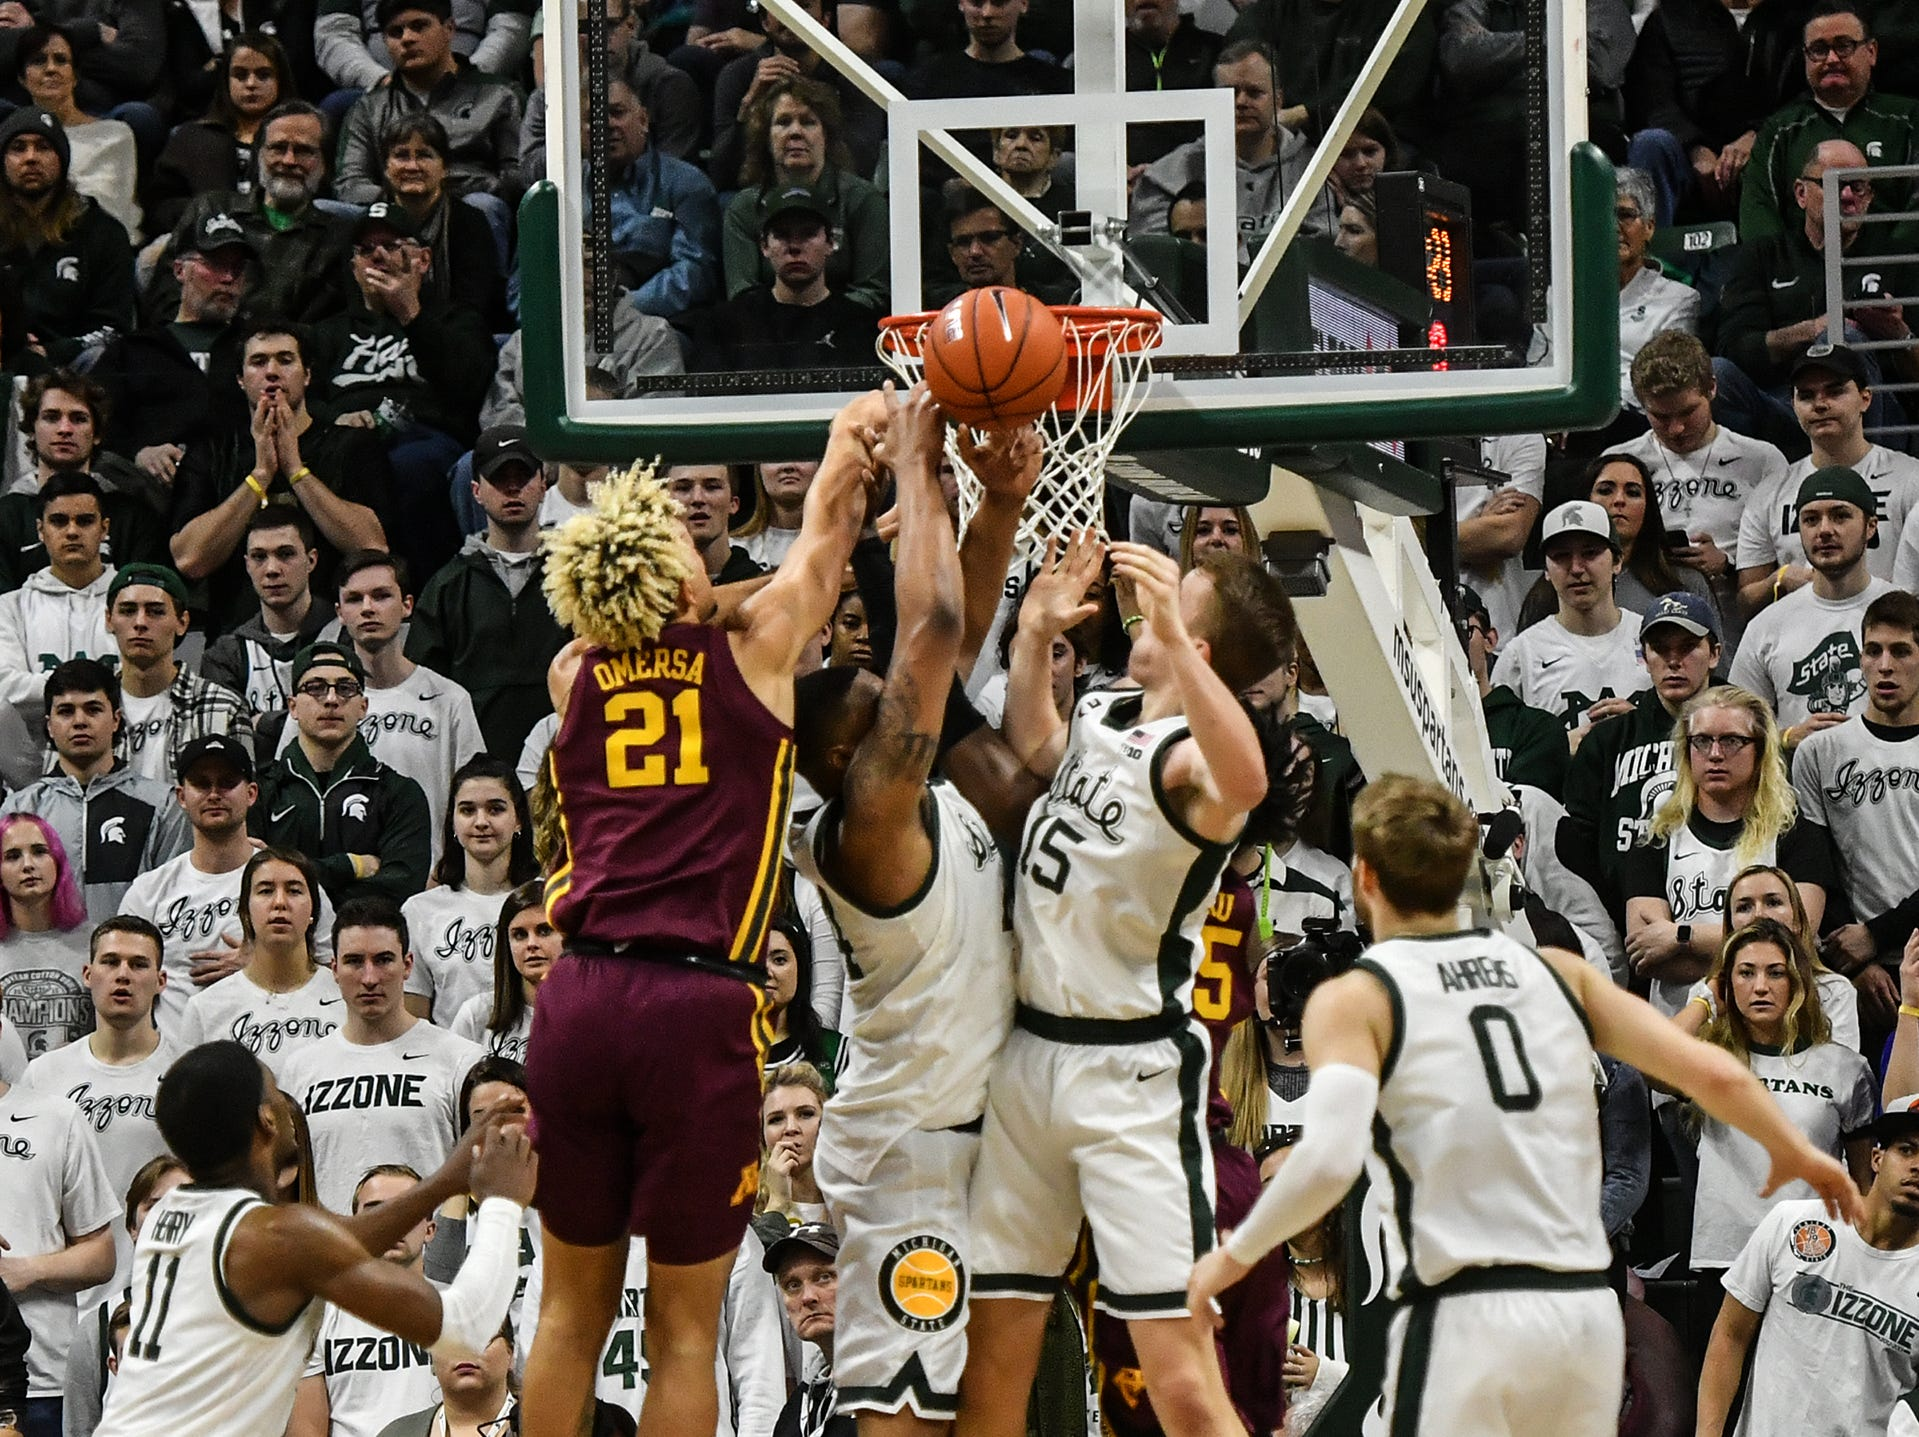 MSU and Minnesota fight for a rebound in a Big Ten match-up Saturday, Feb. 9, 2019. MSU won 79-55.